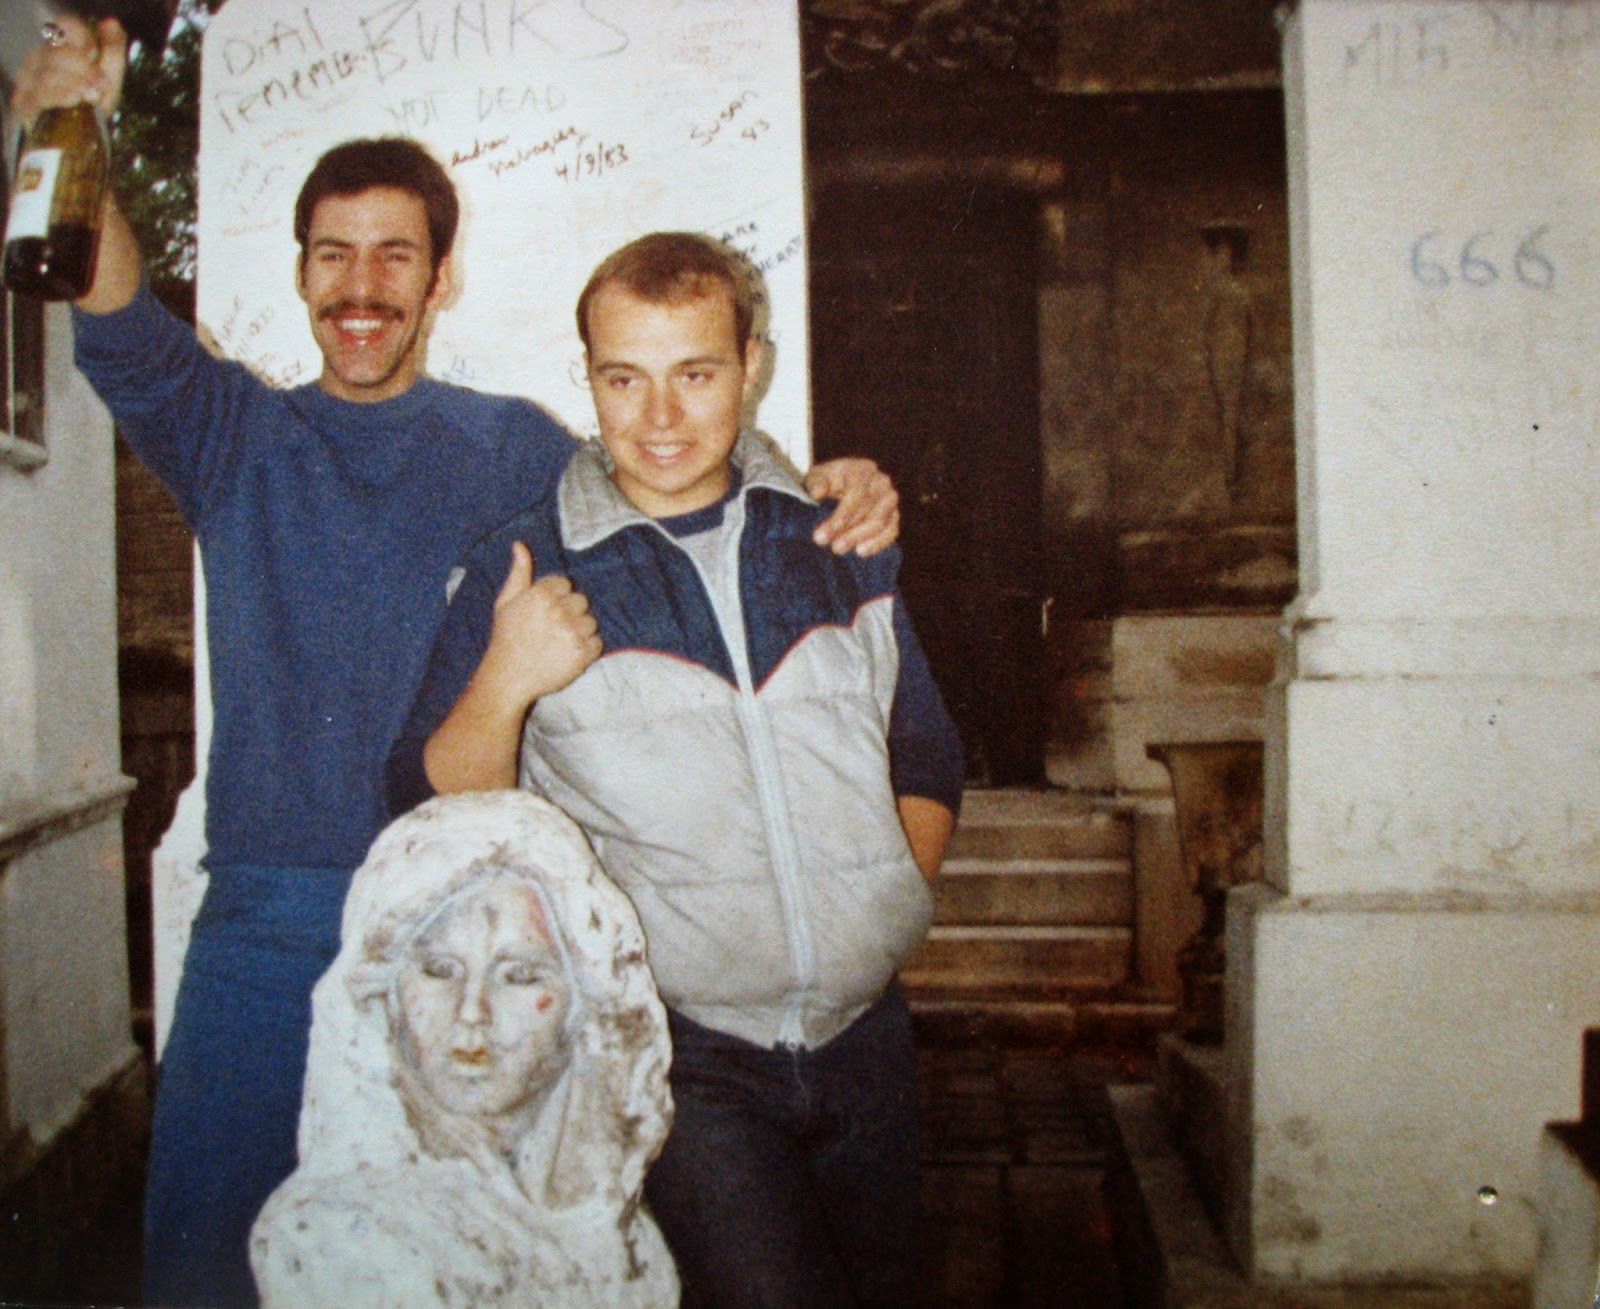 Tommy Mondello & Billy Scire at Jim Morrison's grave site May 4, 1983